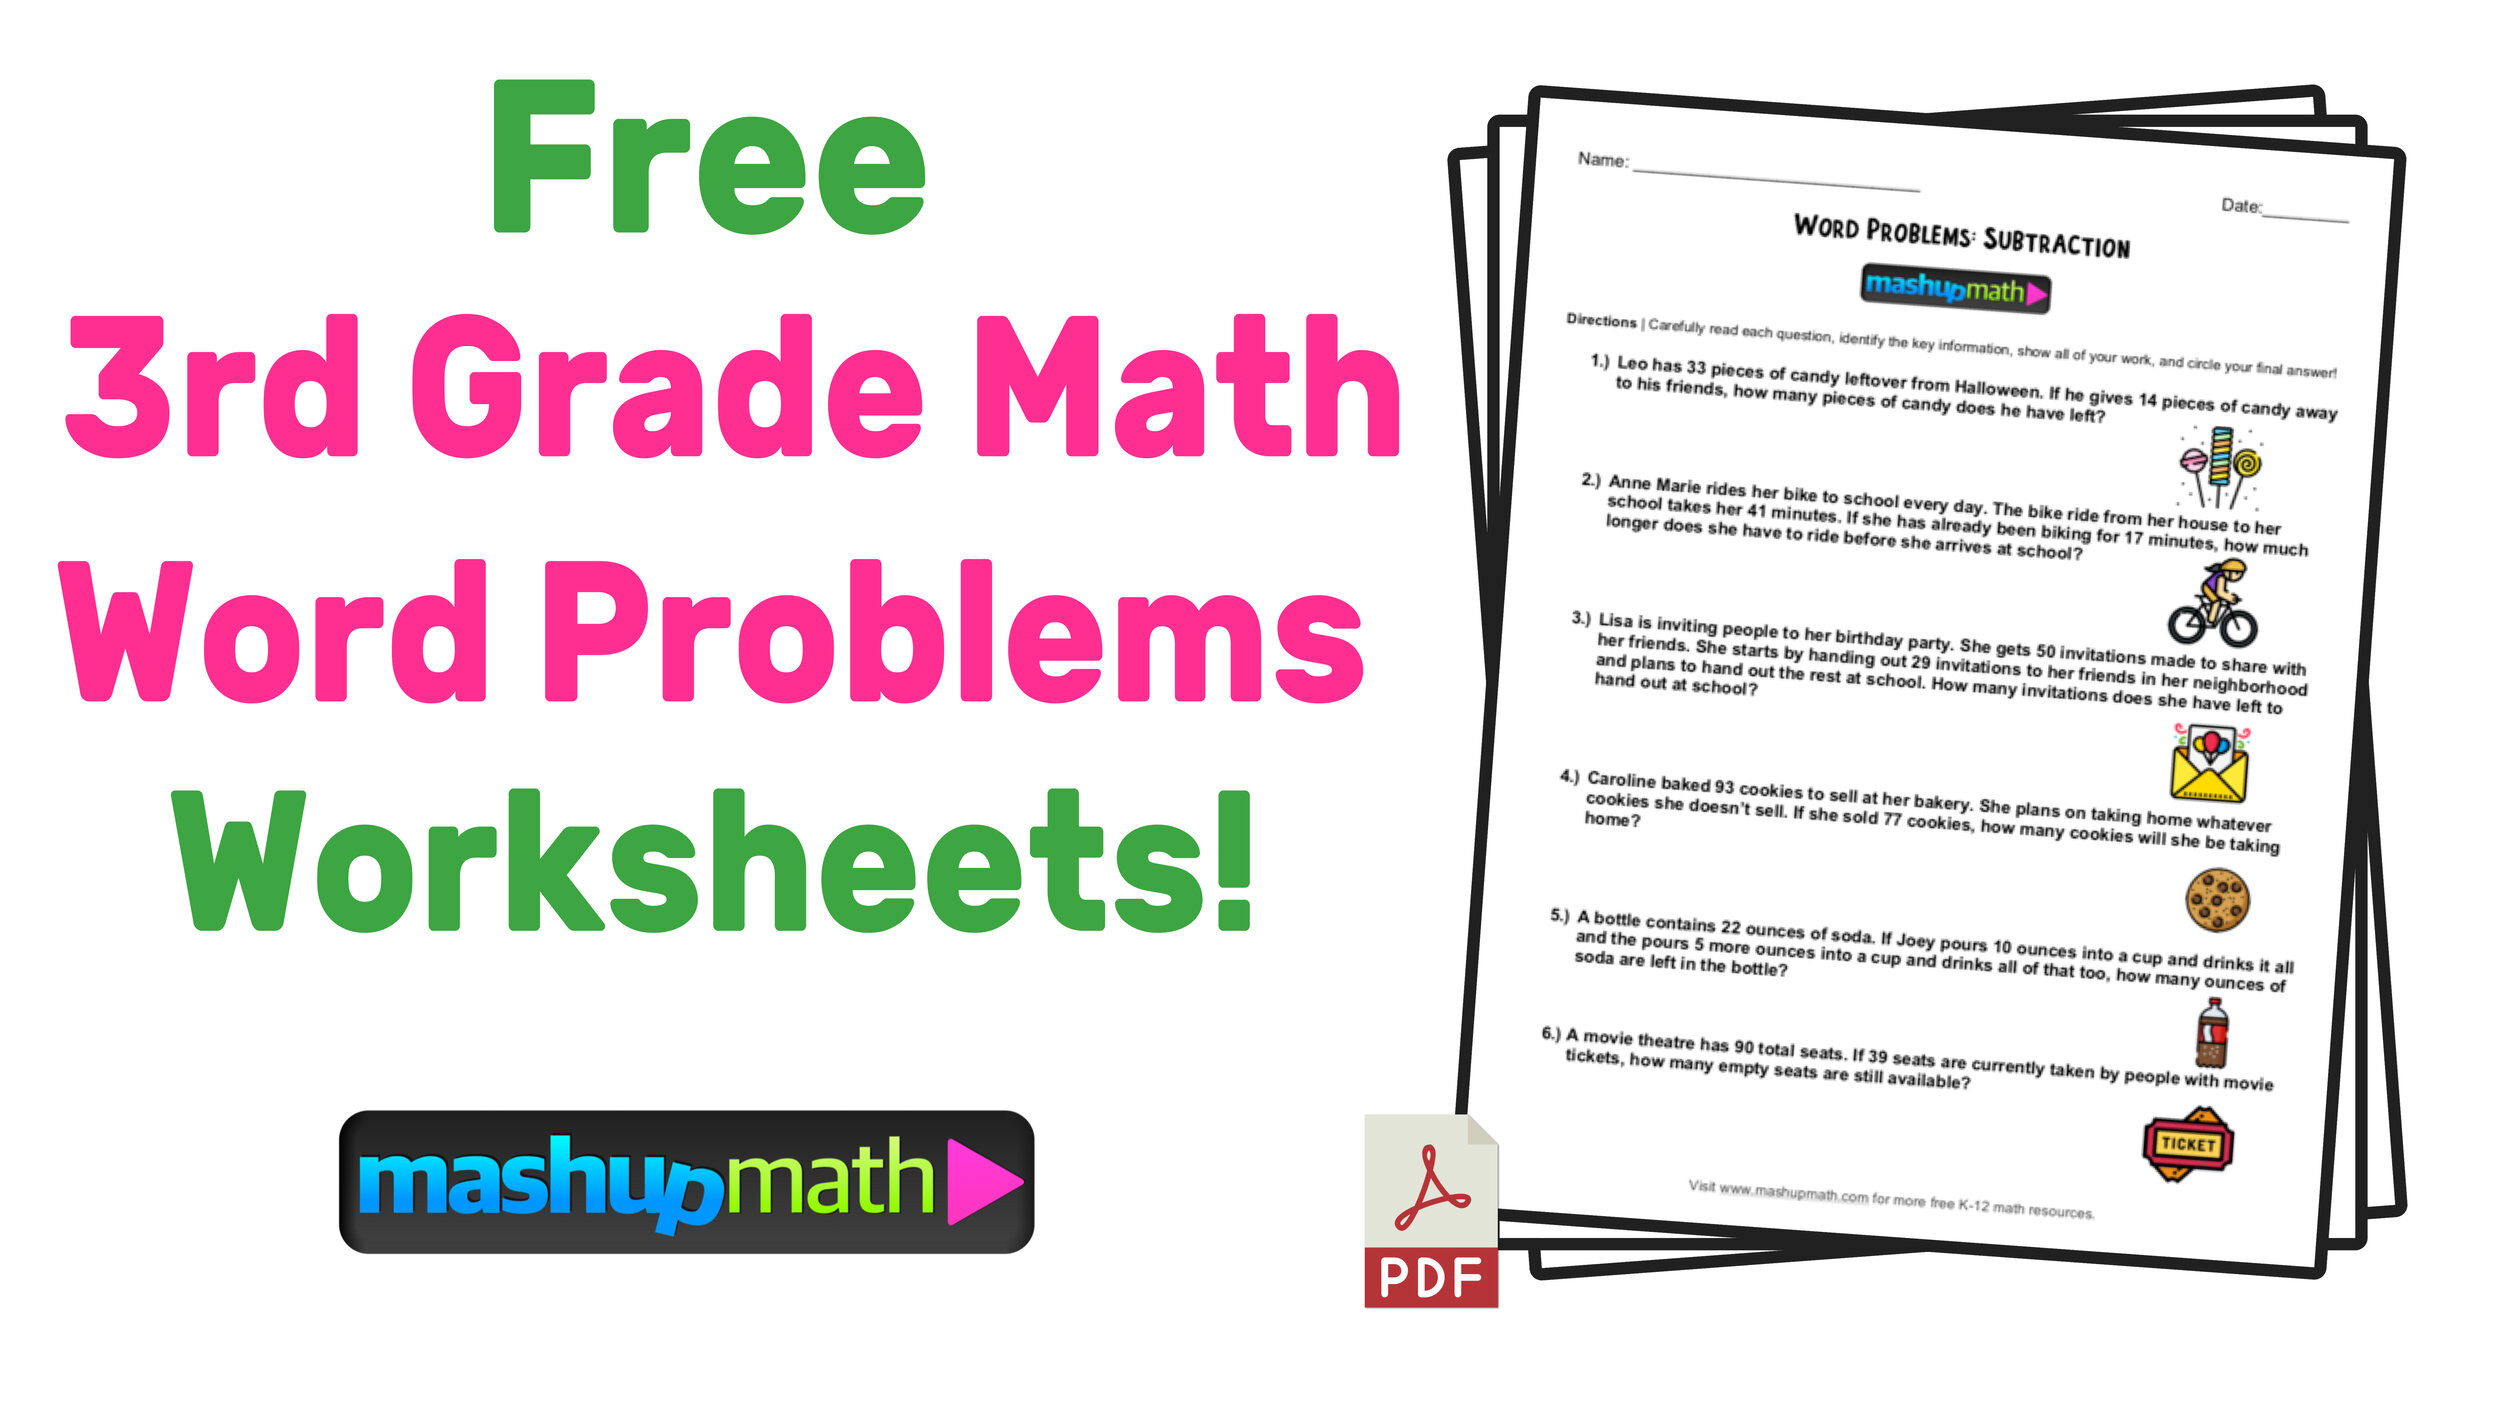 Measuring Worksheets 3rd Grade 3rd Grade Math Word Problems Free Worksheets with Answers